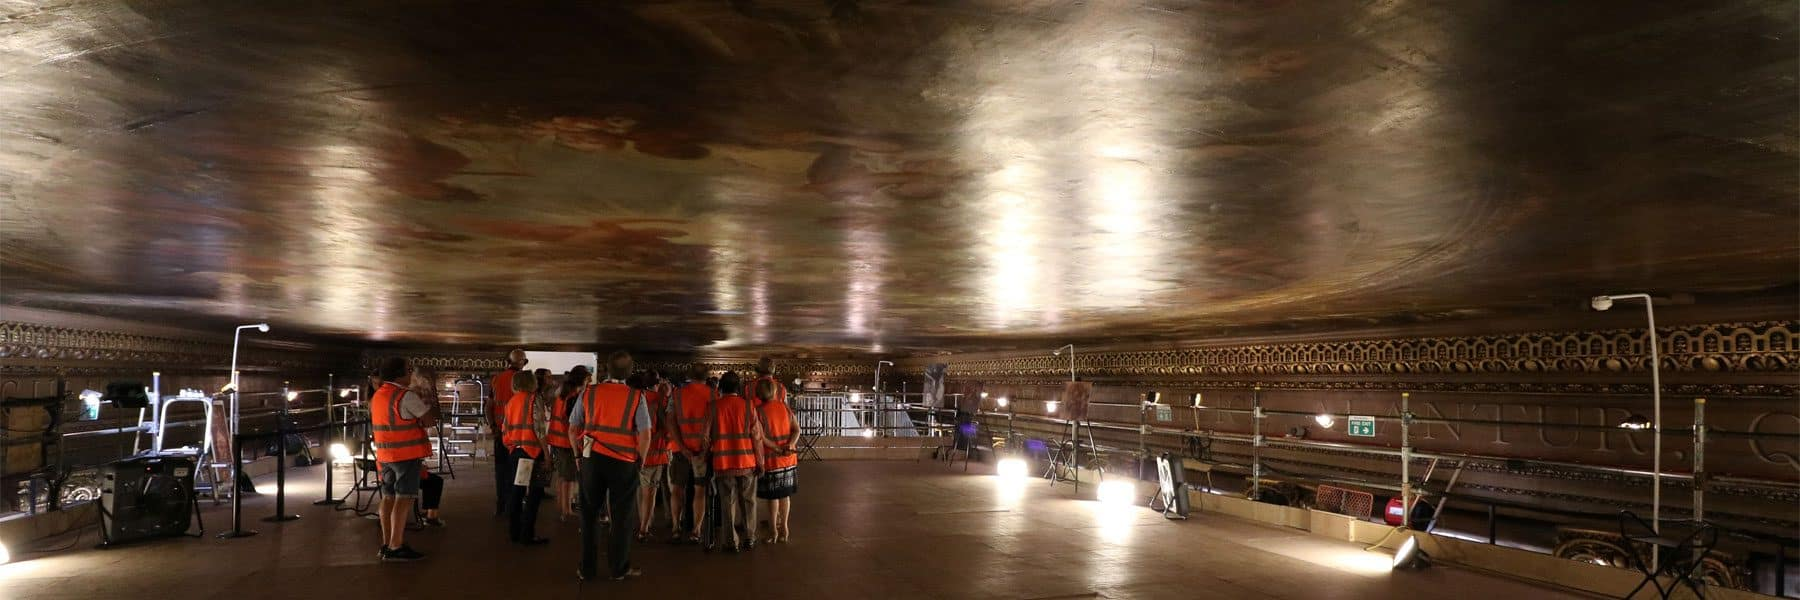 Painted Hall Ceiling Tours, Old Royal Naval College, Royal Borough of Greenwich